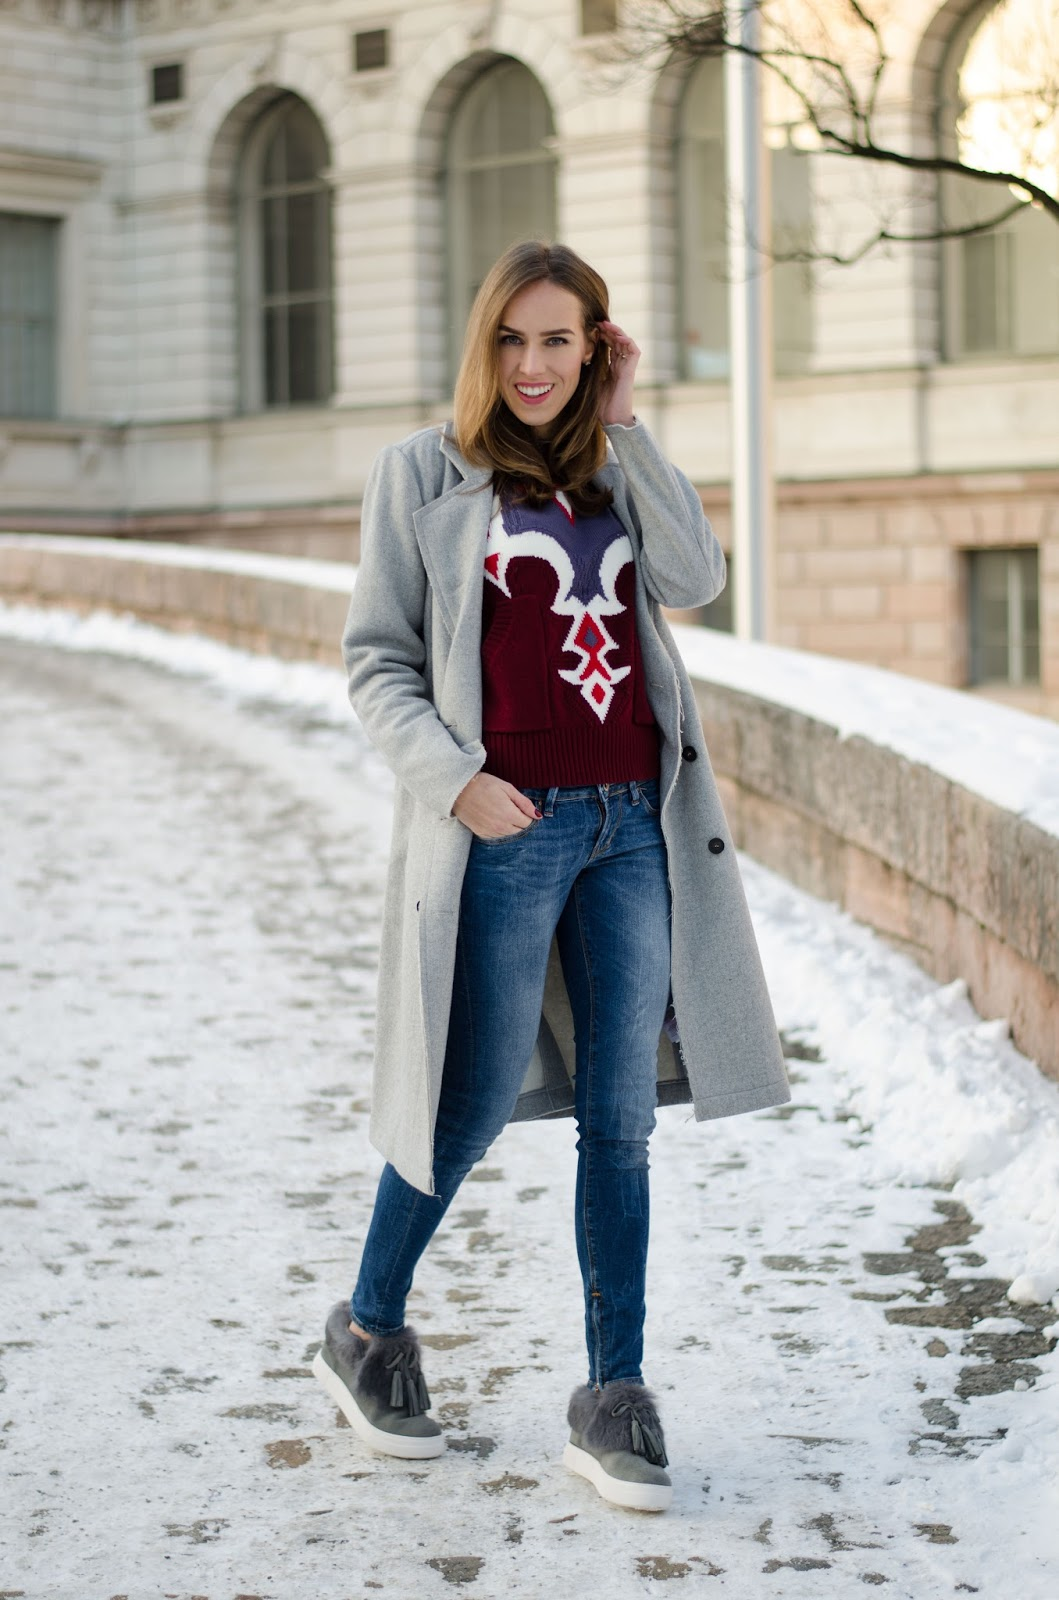 kristjaana mere gray coat bordeaux print sweater skinny jeans fur sneakers